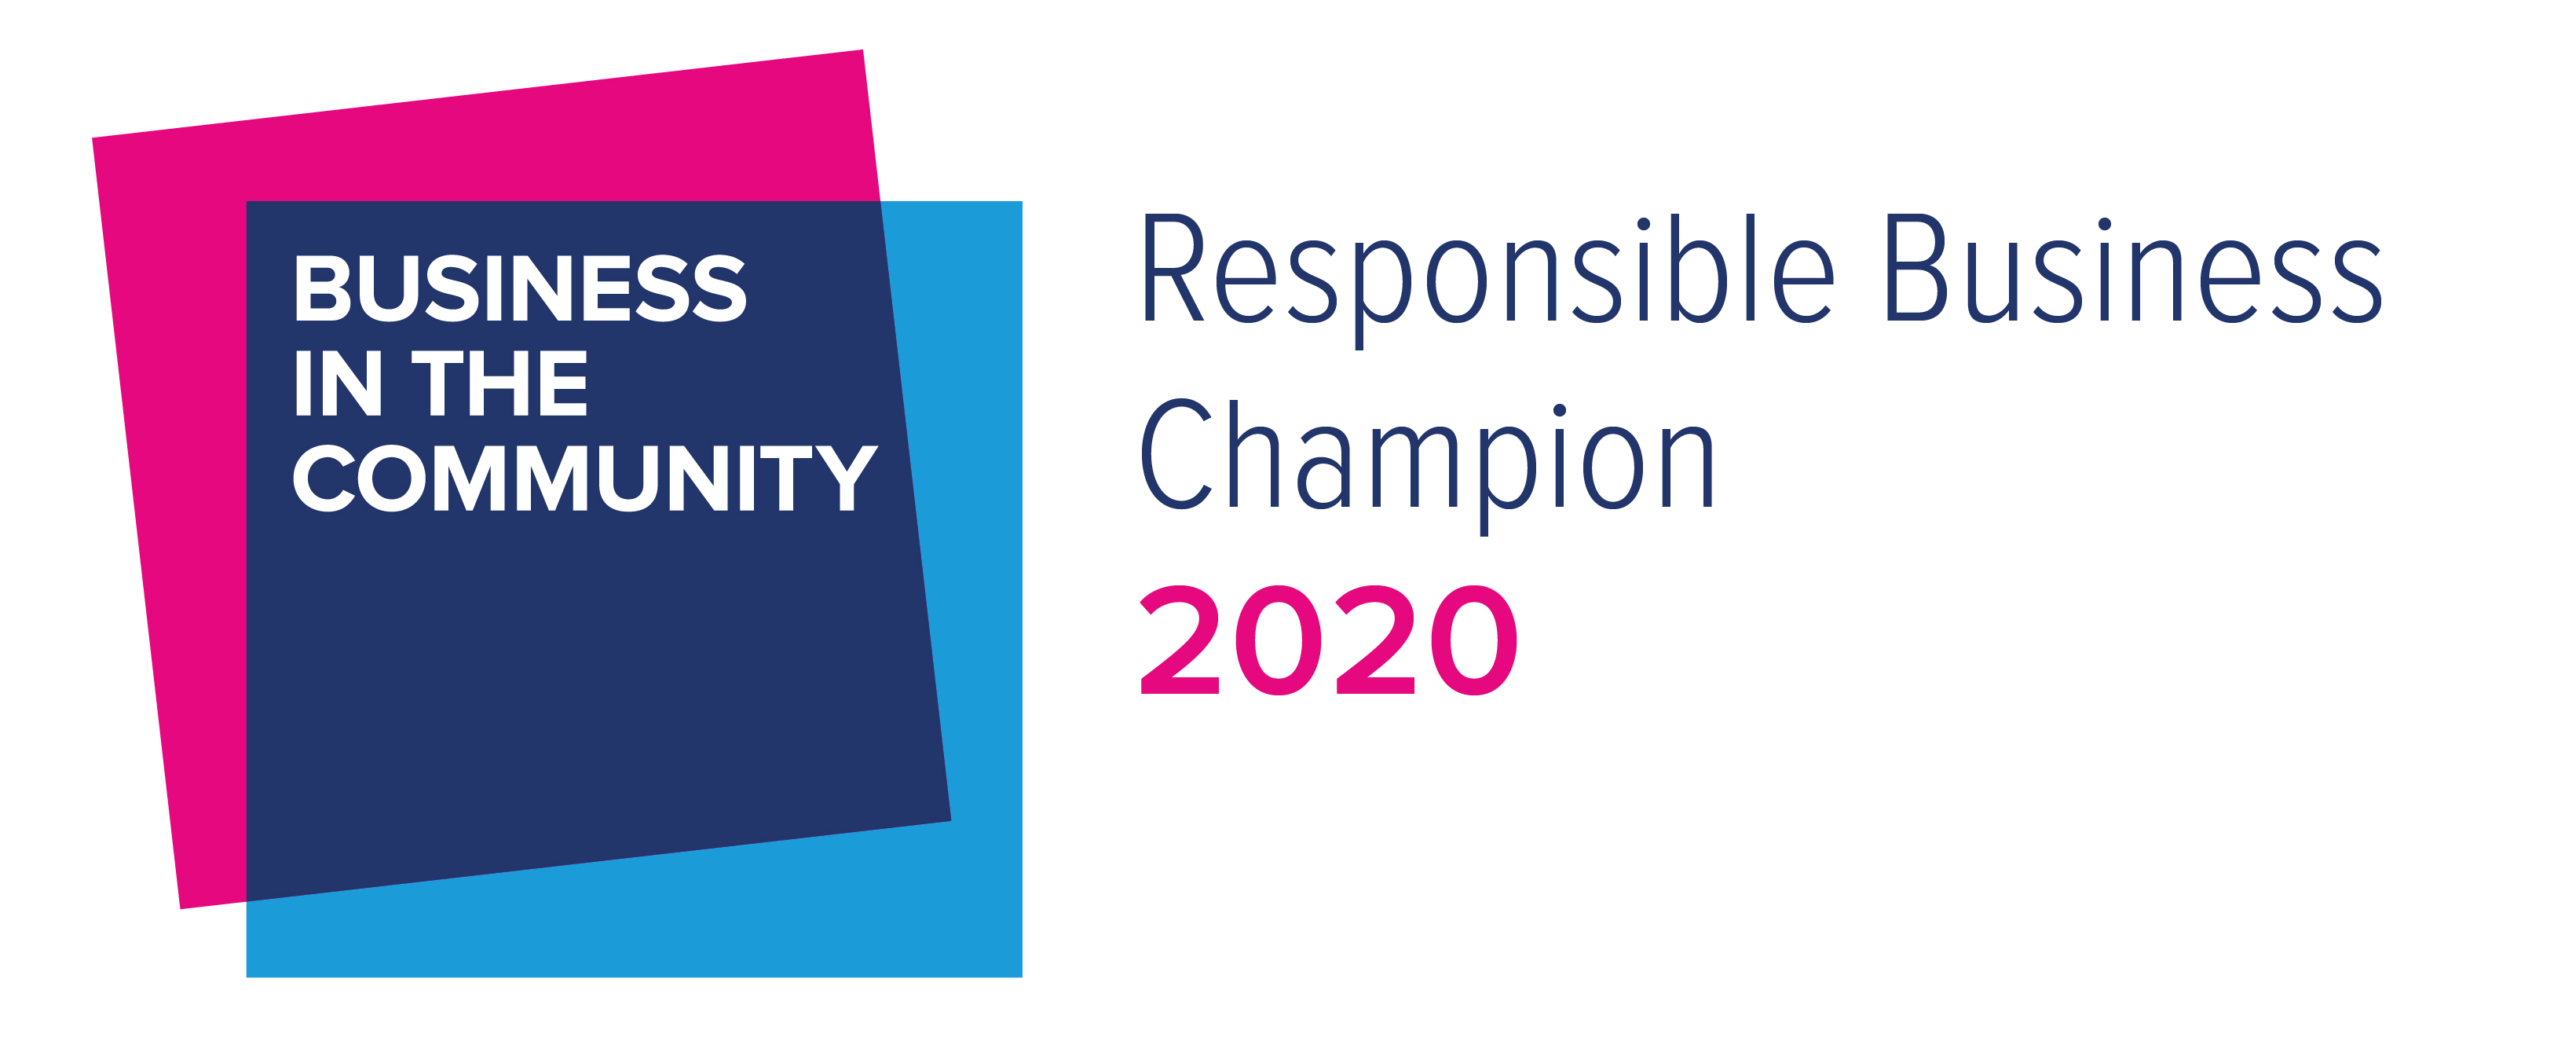 Responsible Business Champion 2020 image